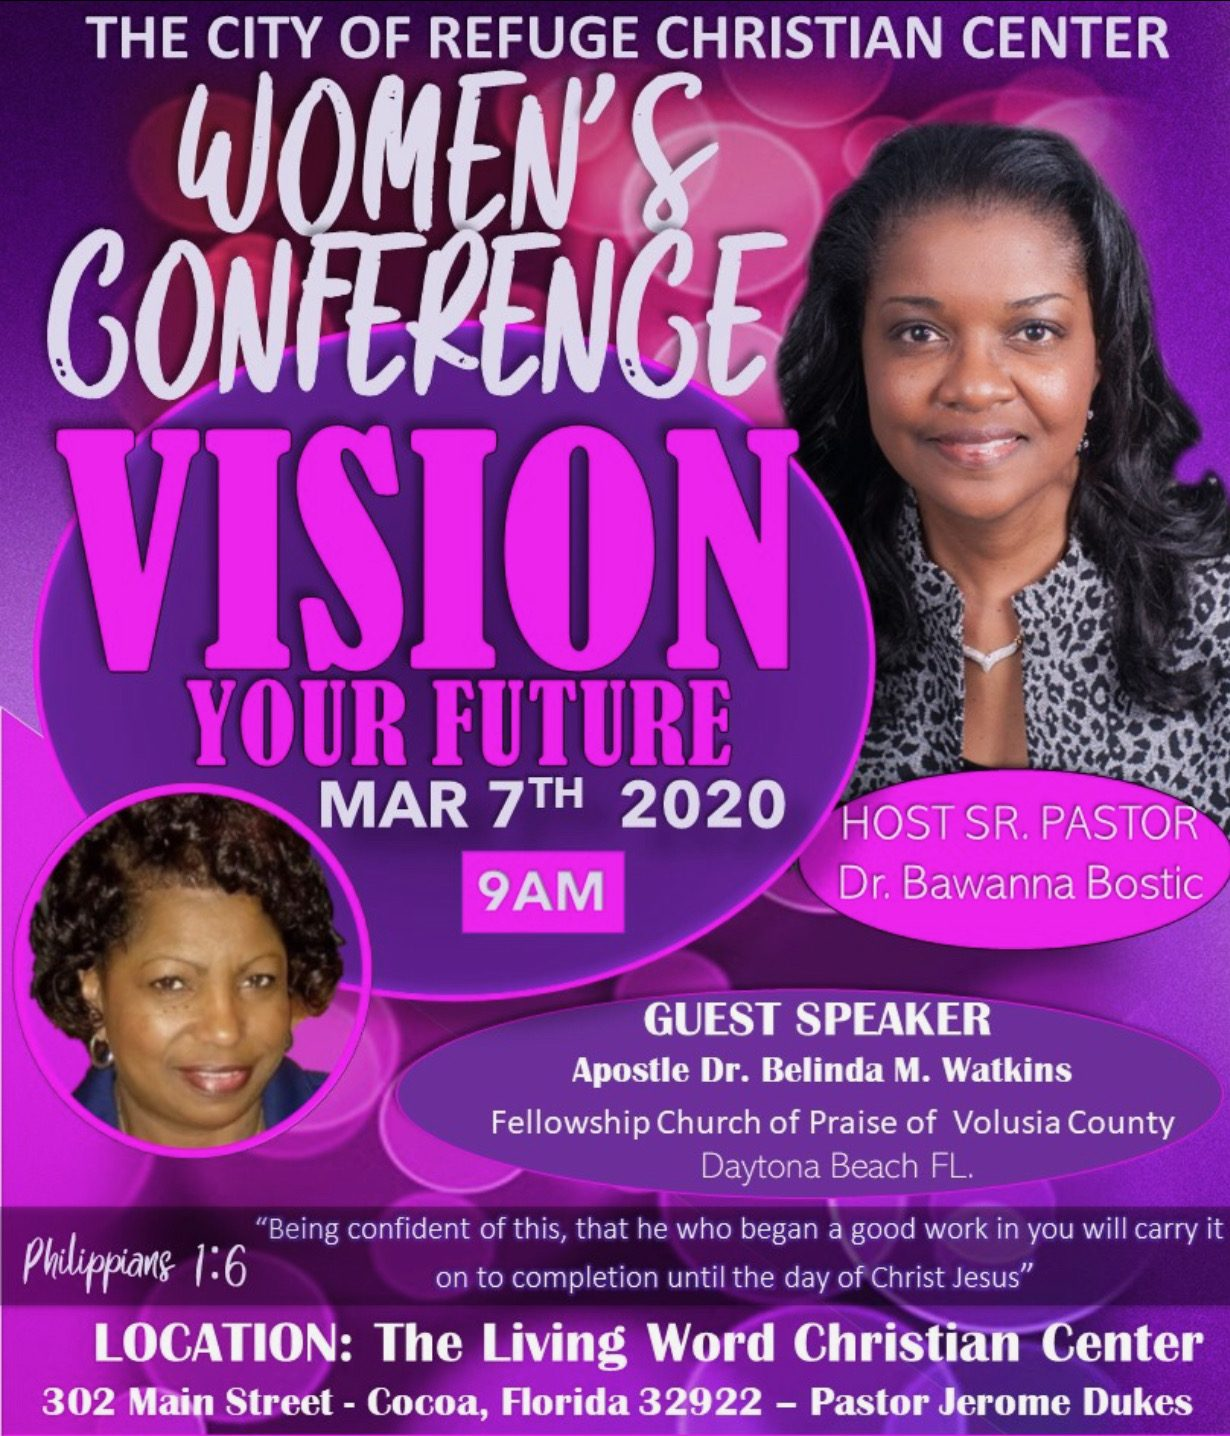 2020 City of Refuge Women's Conference